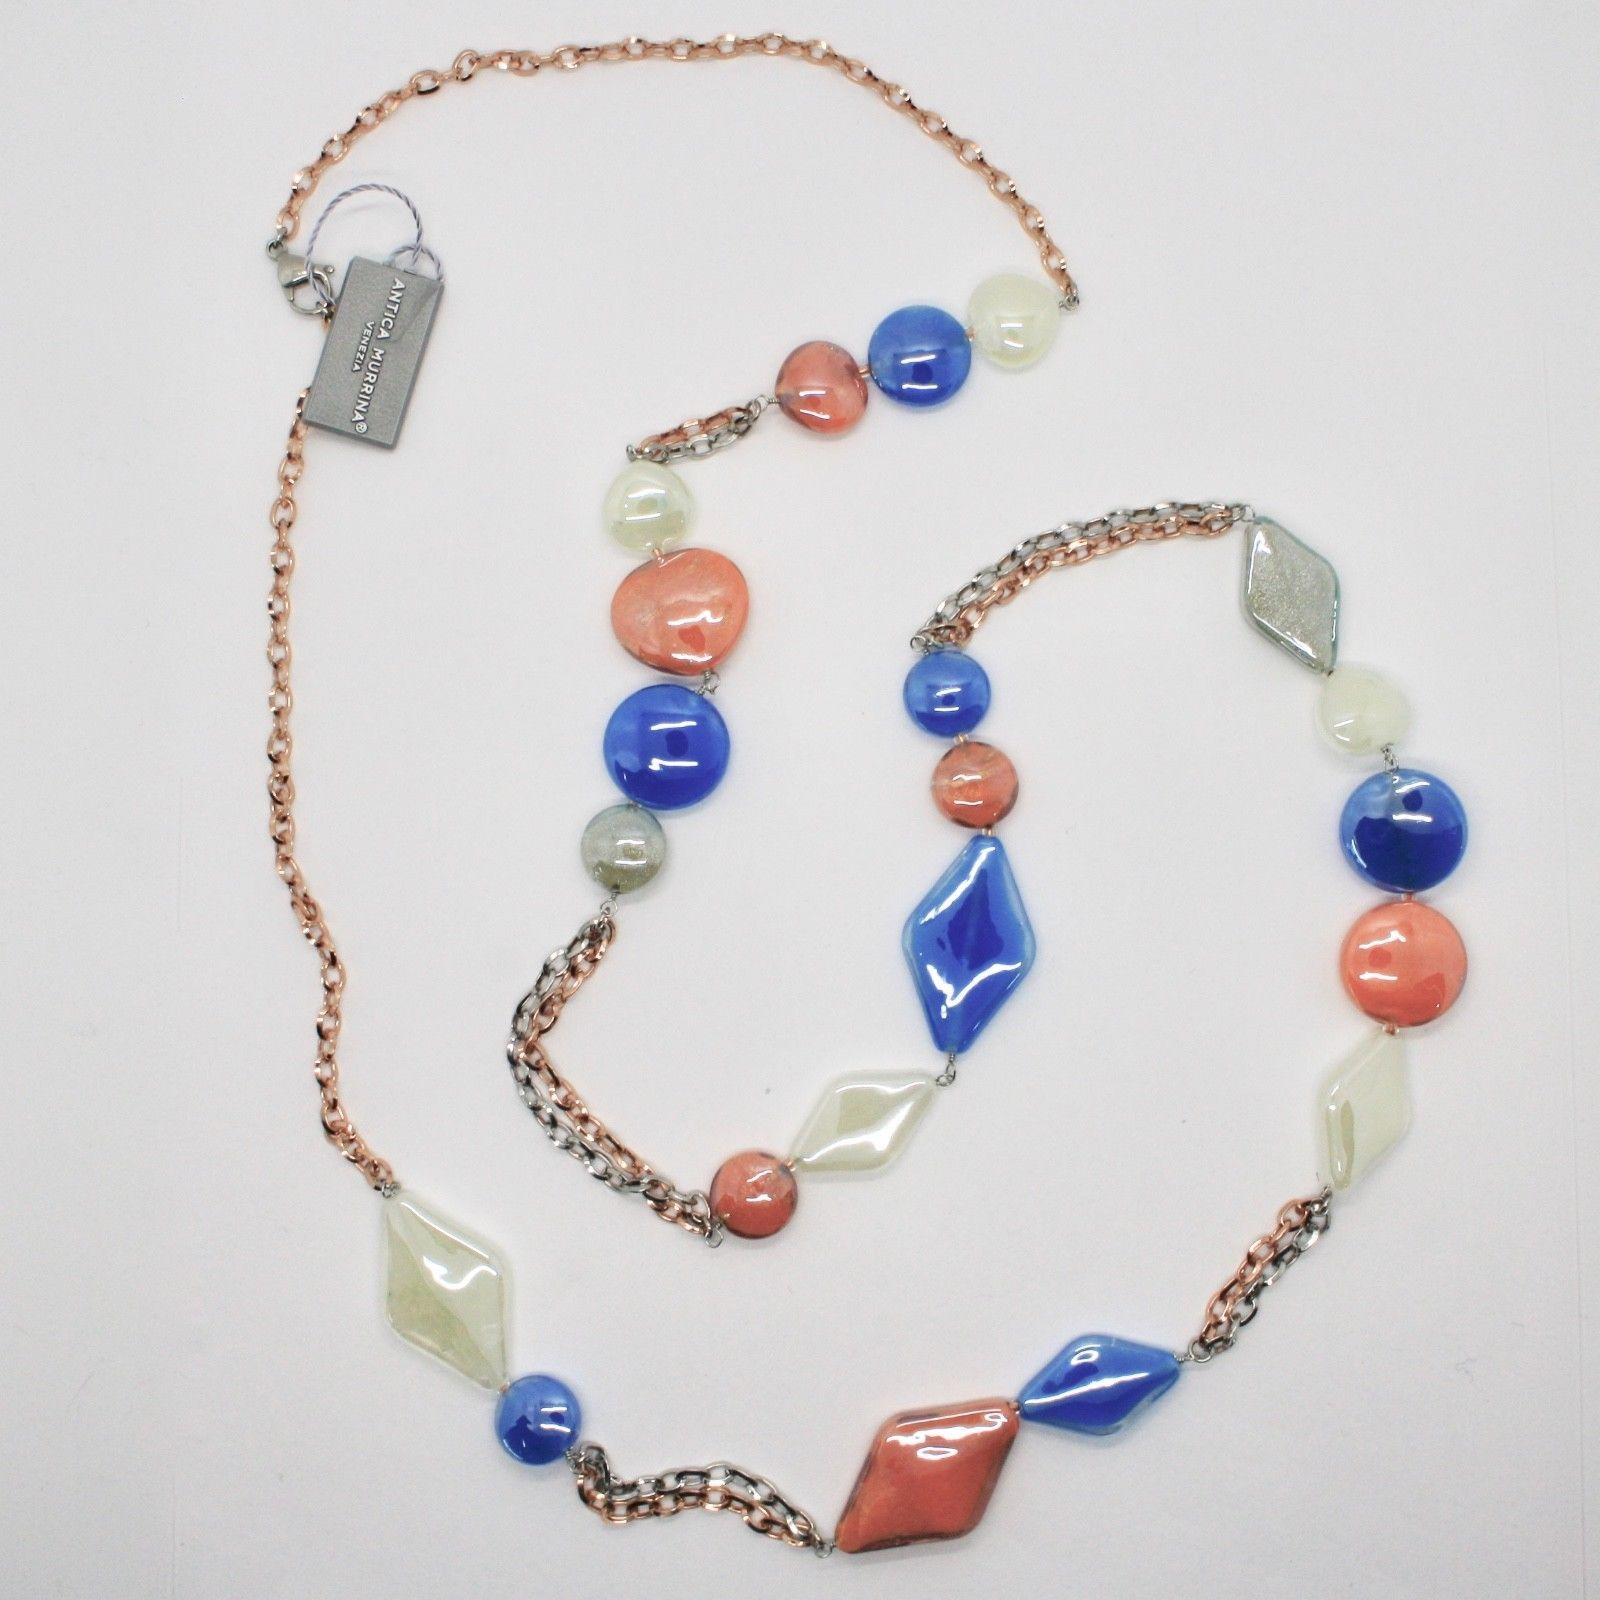 ANTICA MURRINA VENEZIA NECKLACE WITH MURANO GLASS ORANGE BLUE GRAY COA85A46